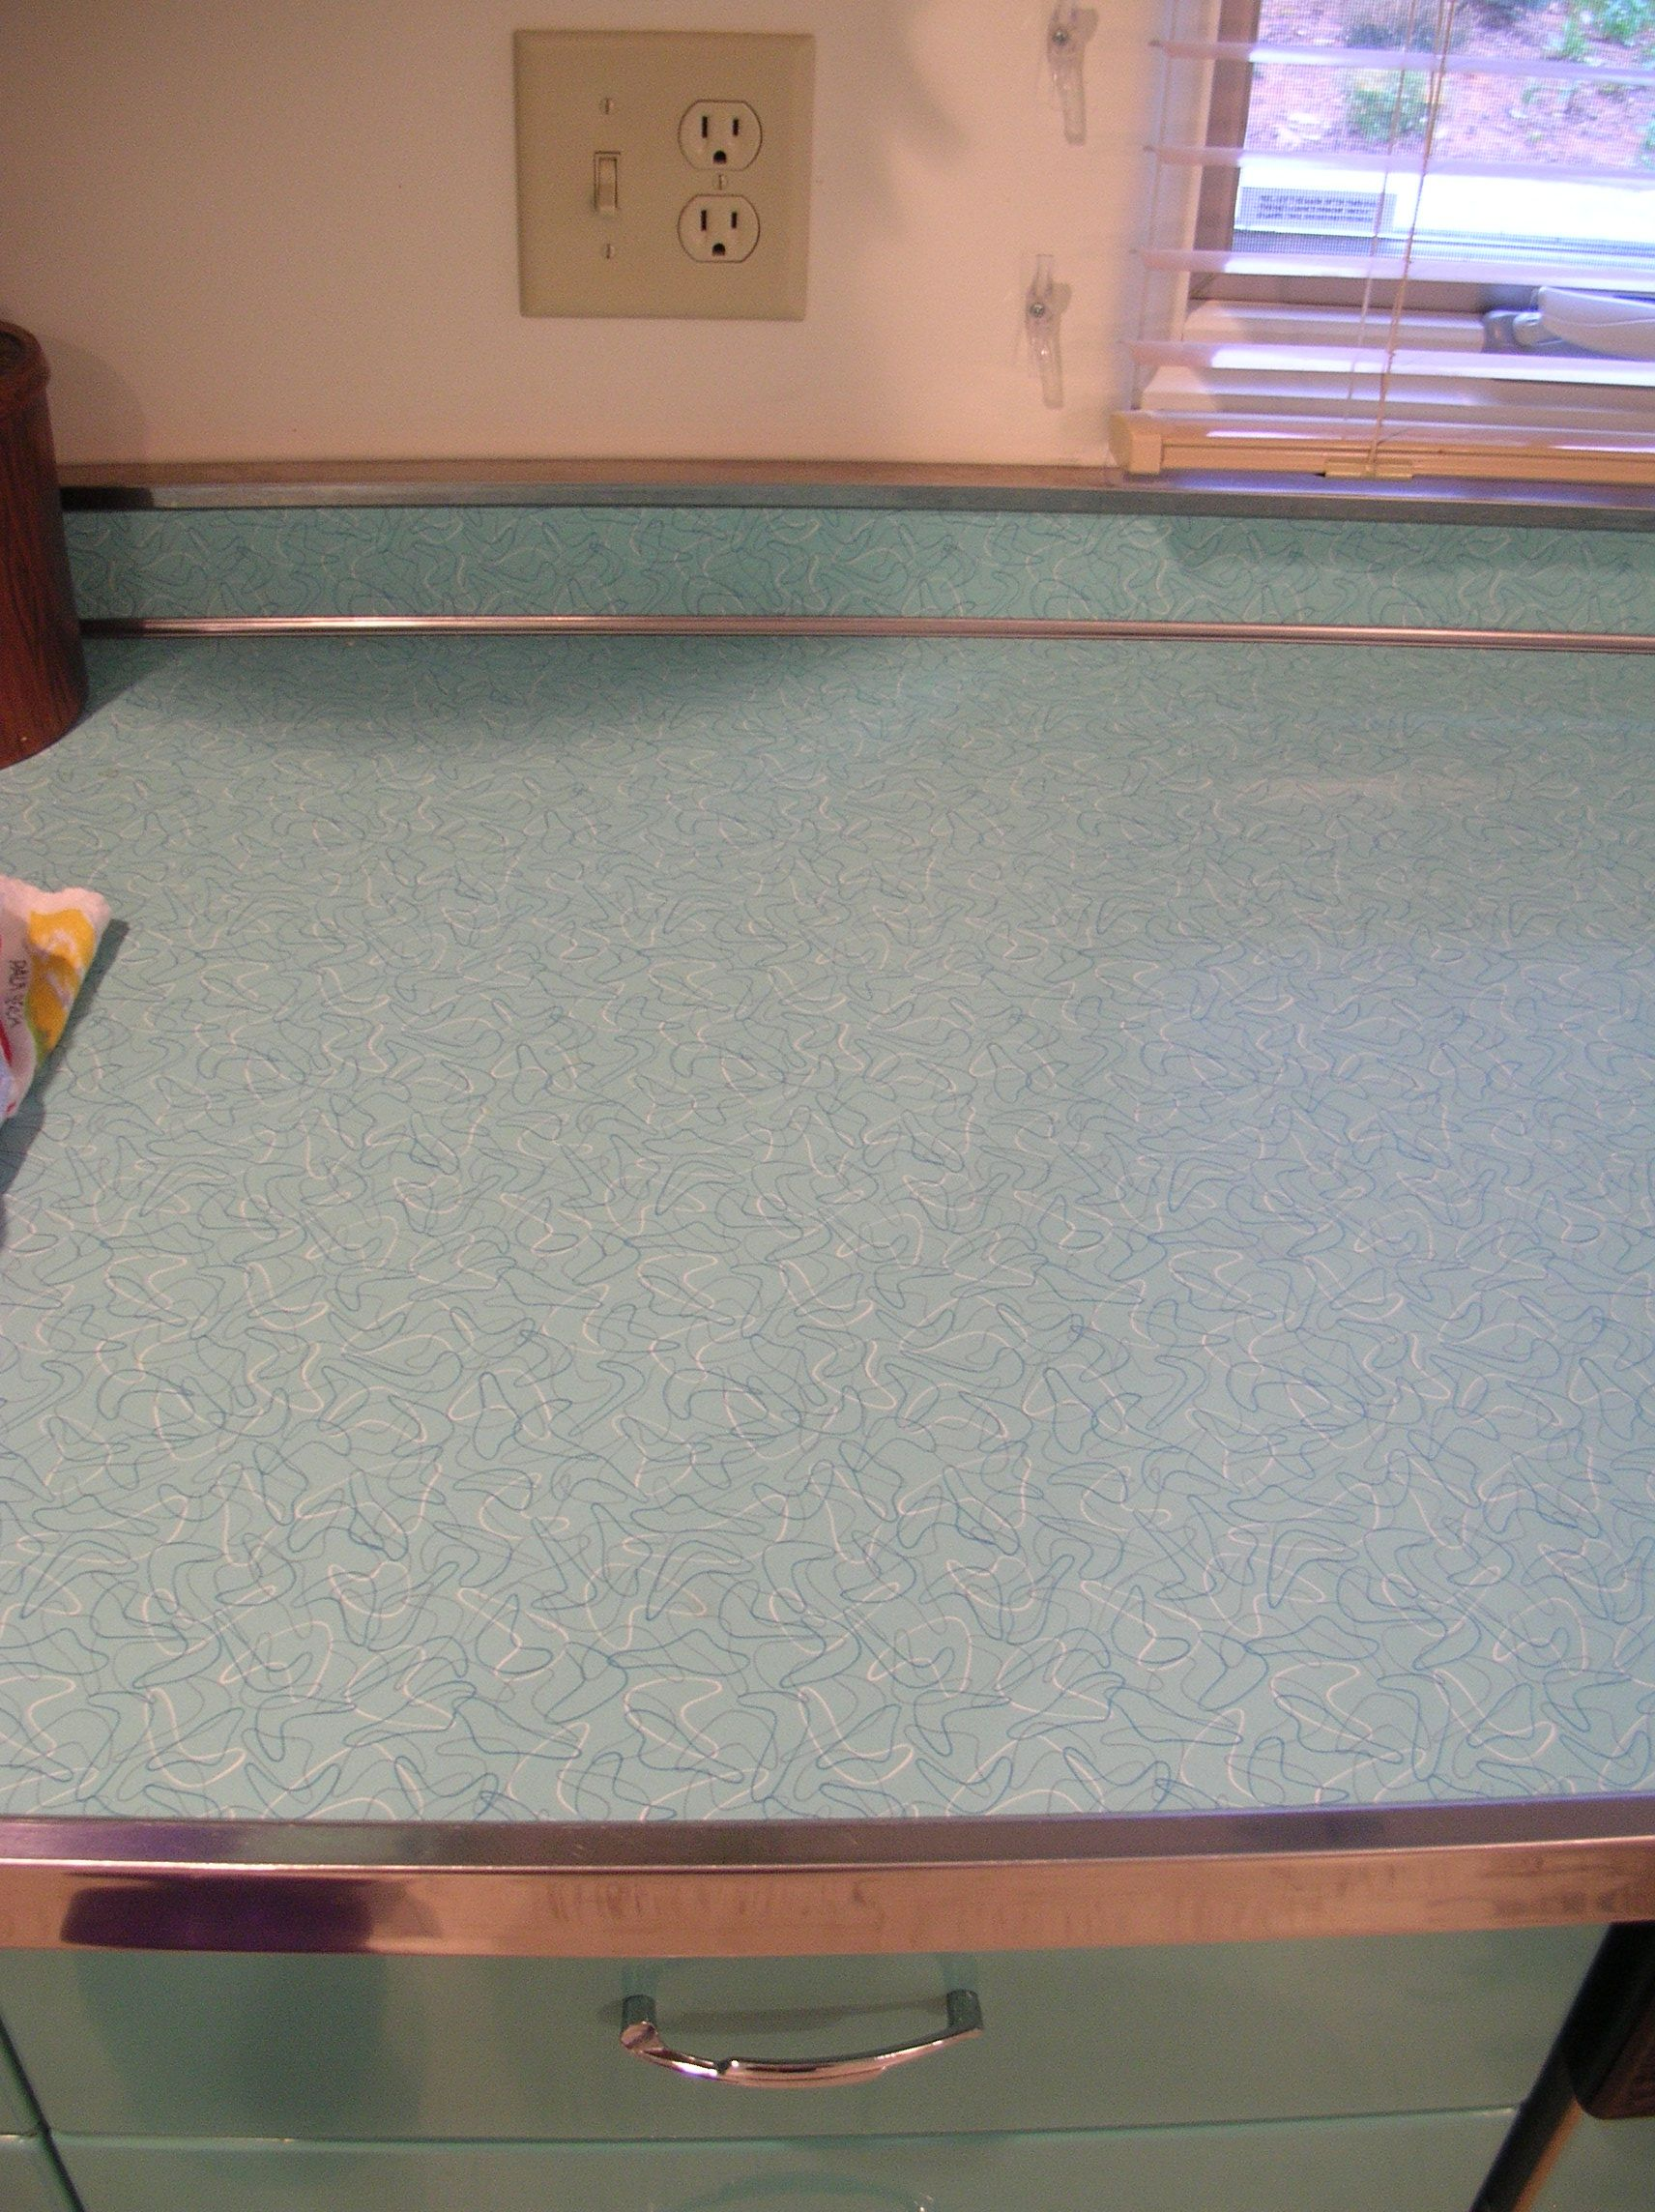 Stainless Steel Countertop Trim Stainless Steel Metal Edging For Your Laminate Countertop